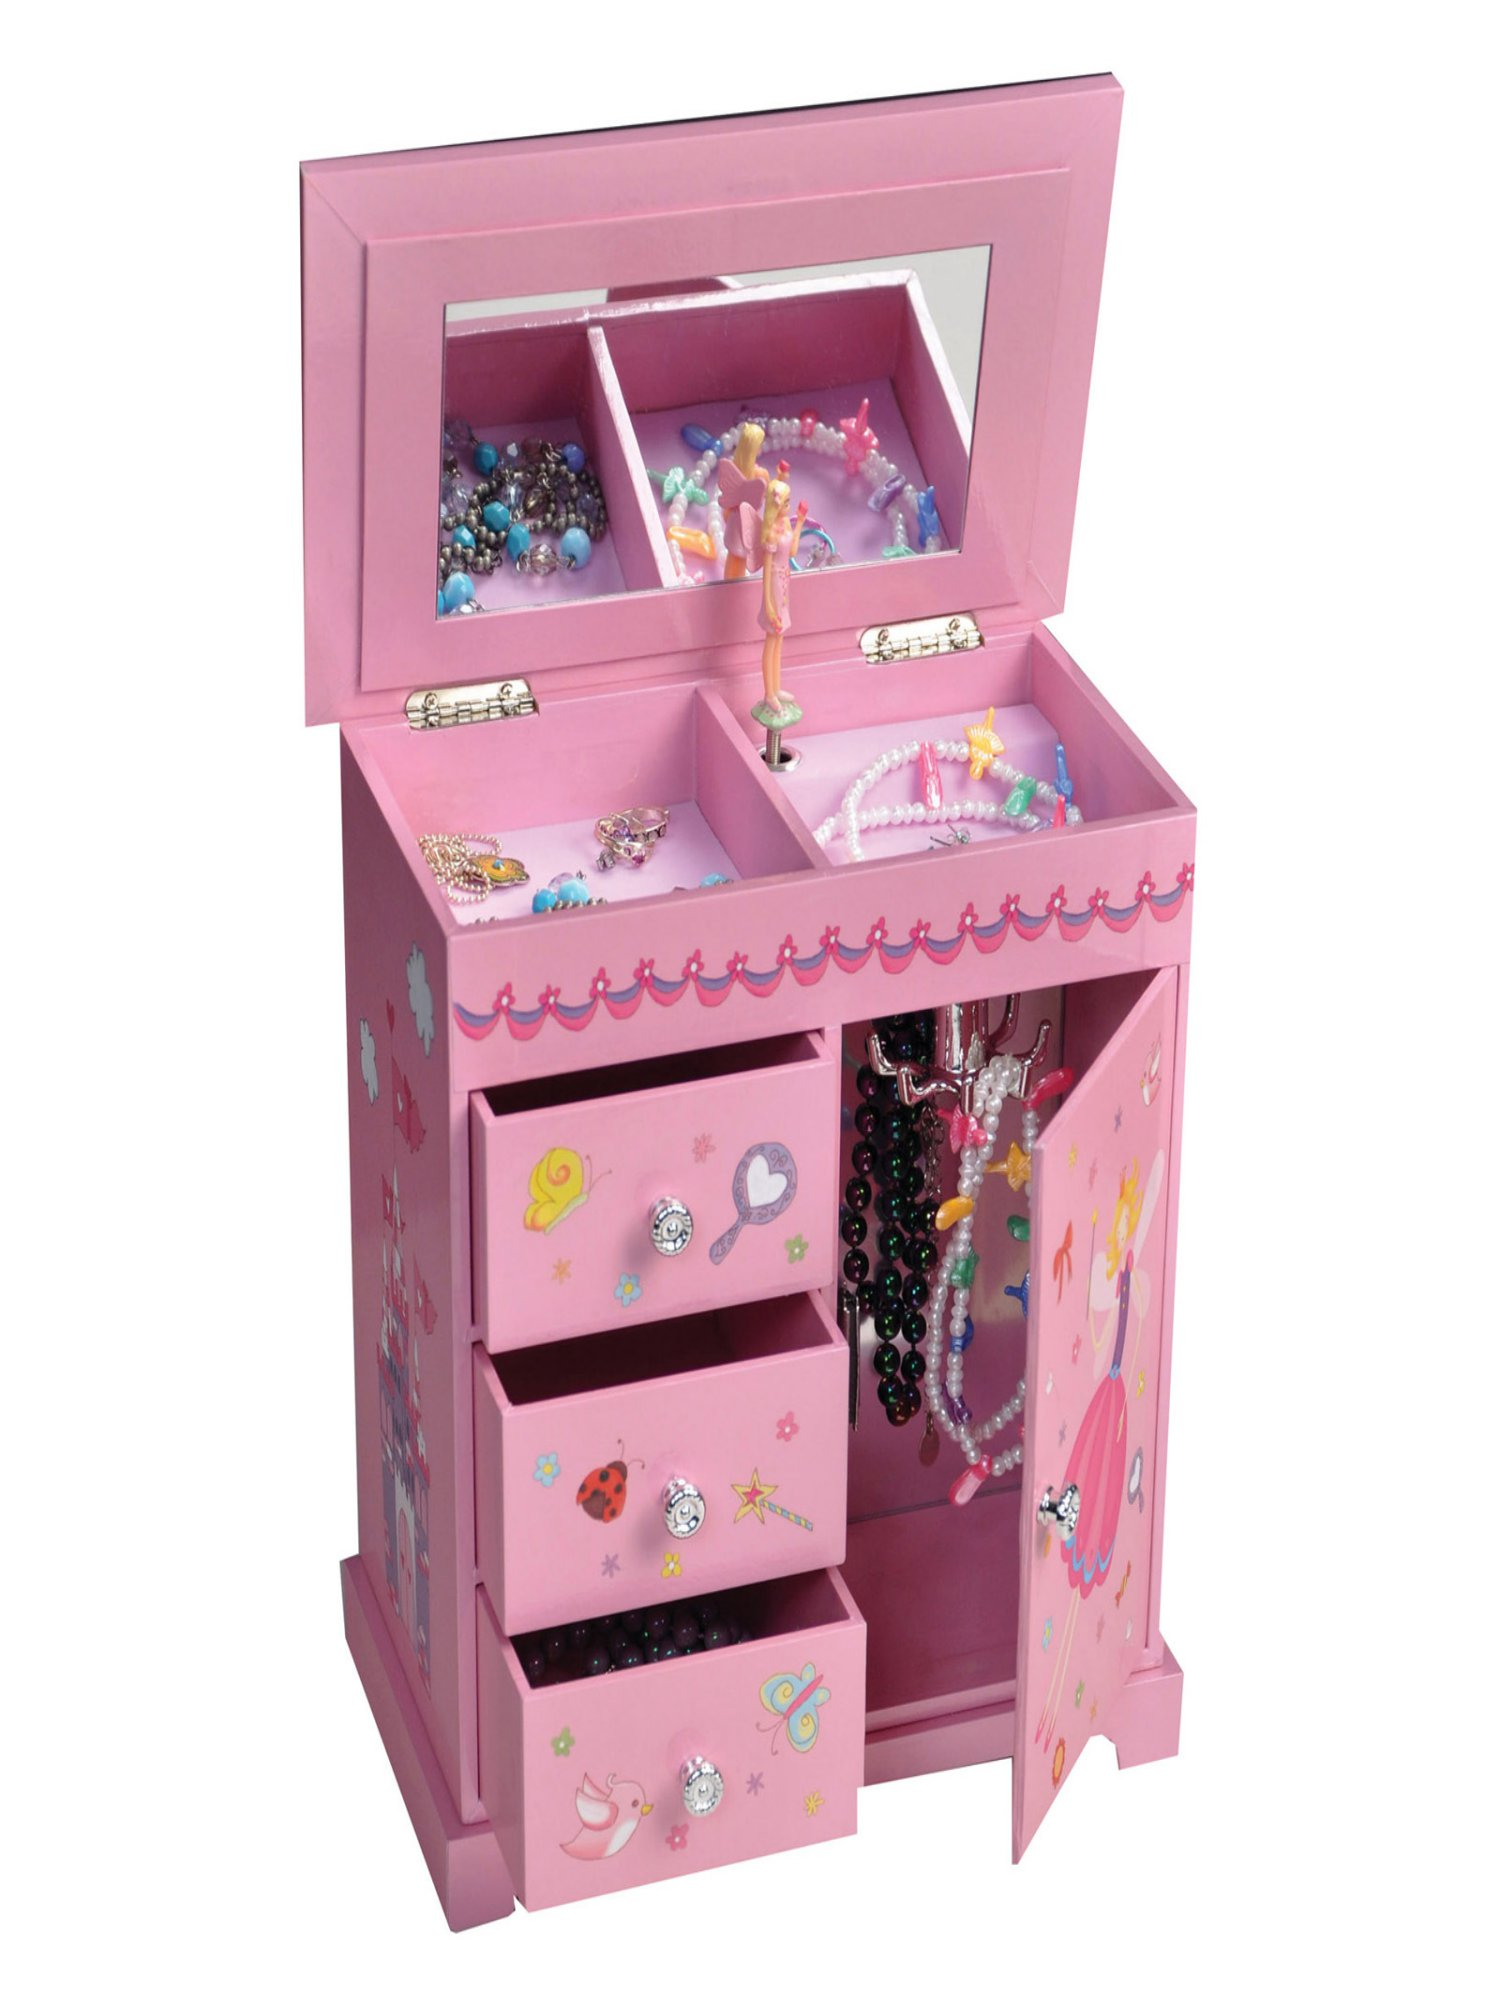 Mele amp Co Krista Musical Dancing Fairy Jewelry Box 95W x 9H